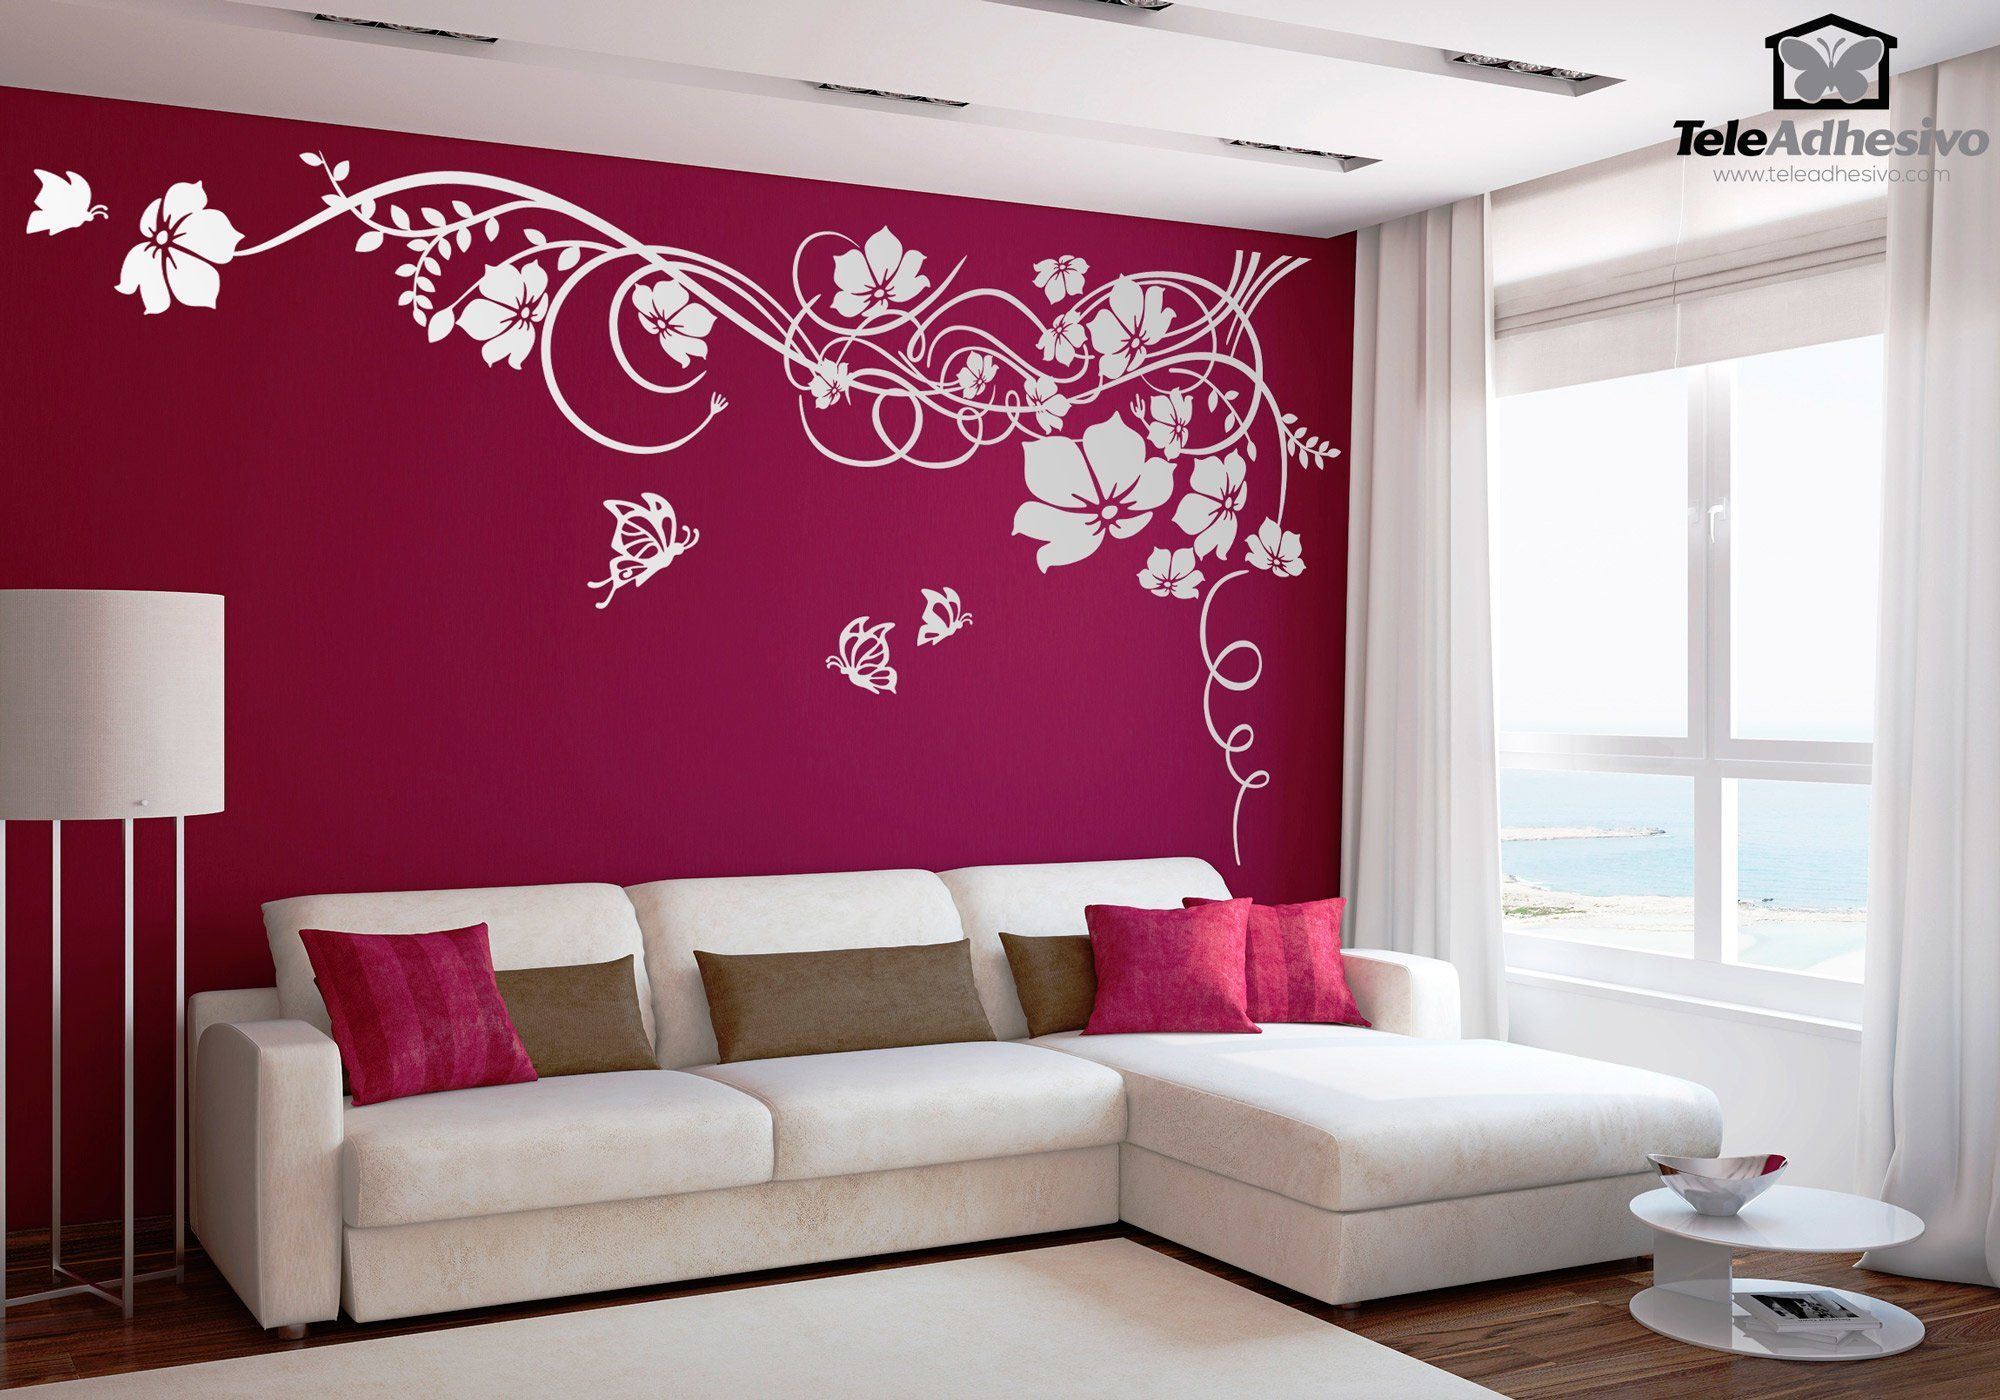 Pintar Paredes 37 Ideas y Trucos Pinterest Walls Bedrooms